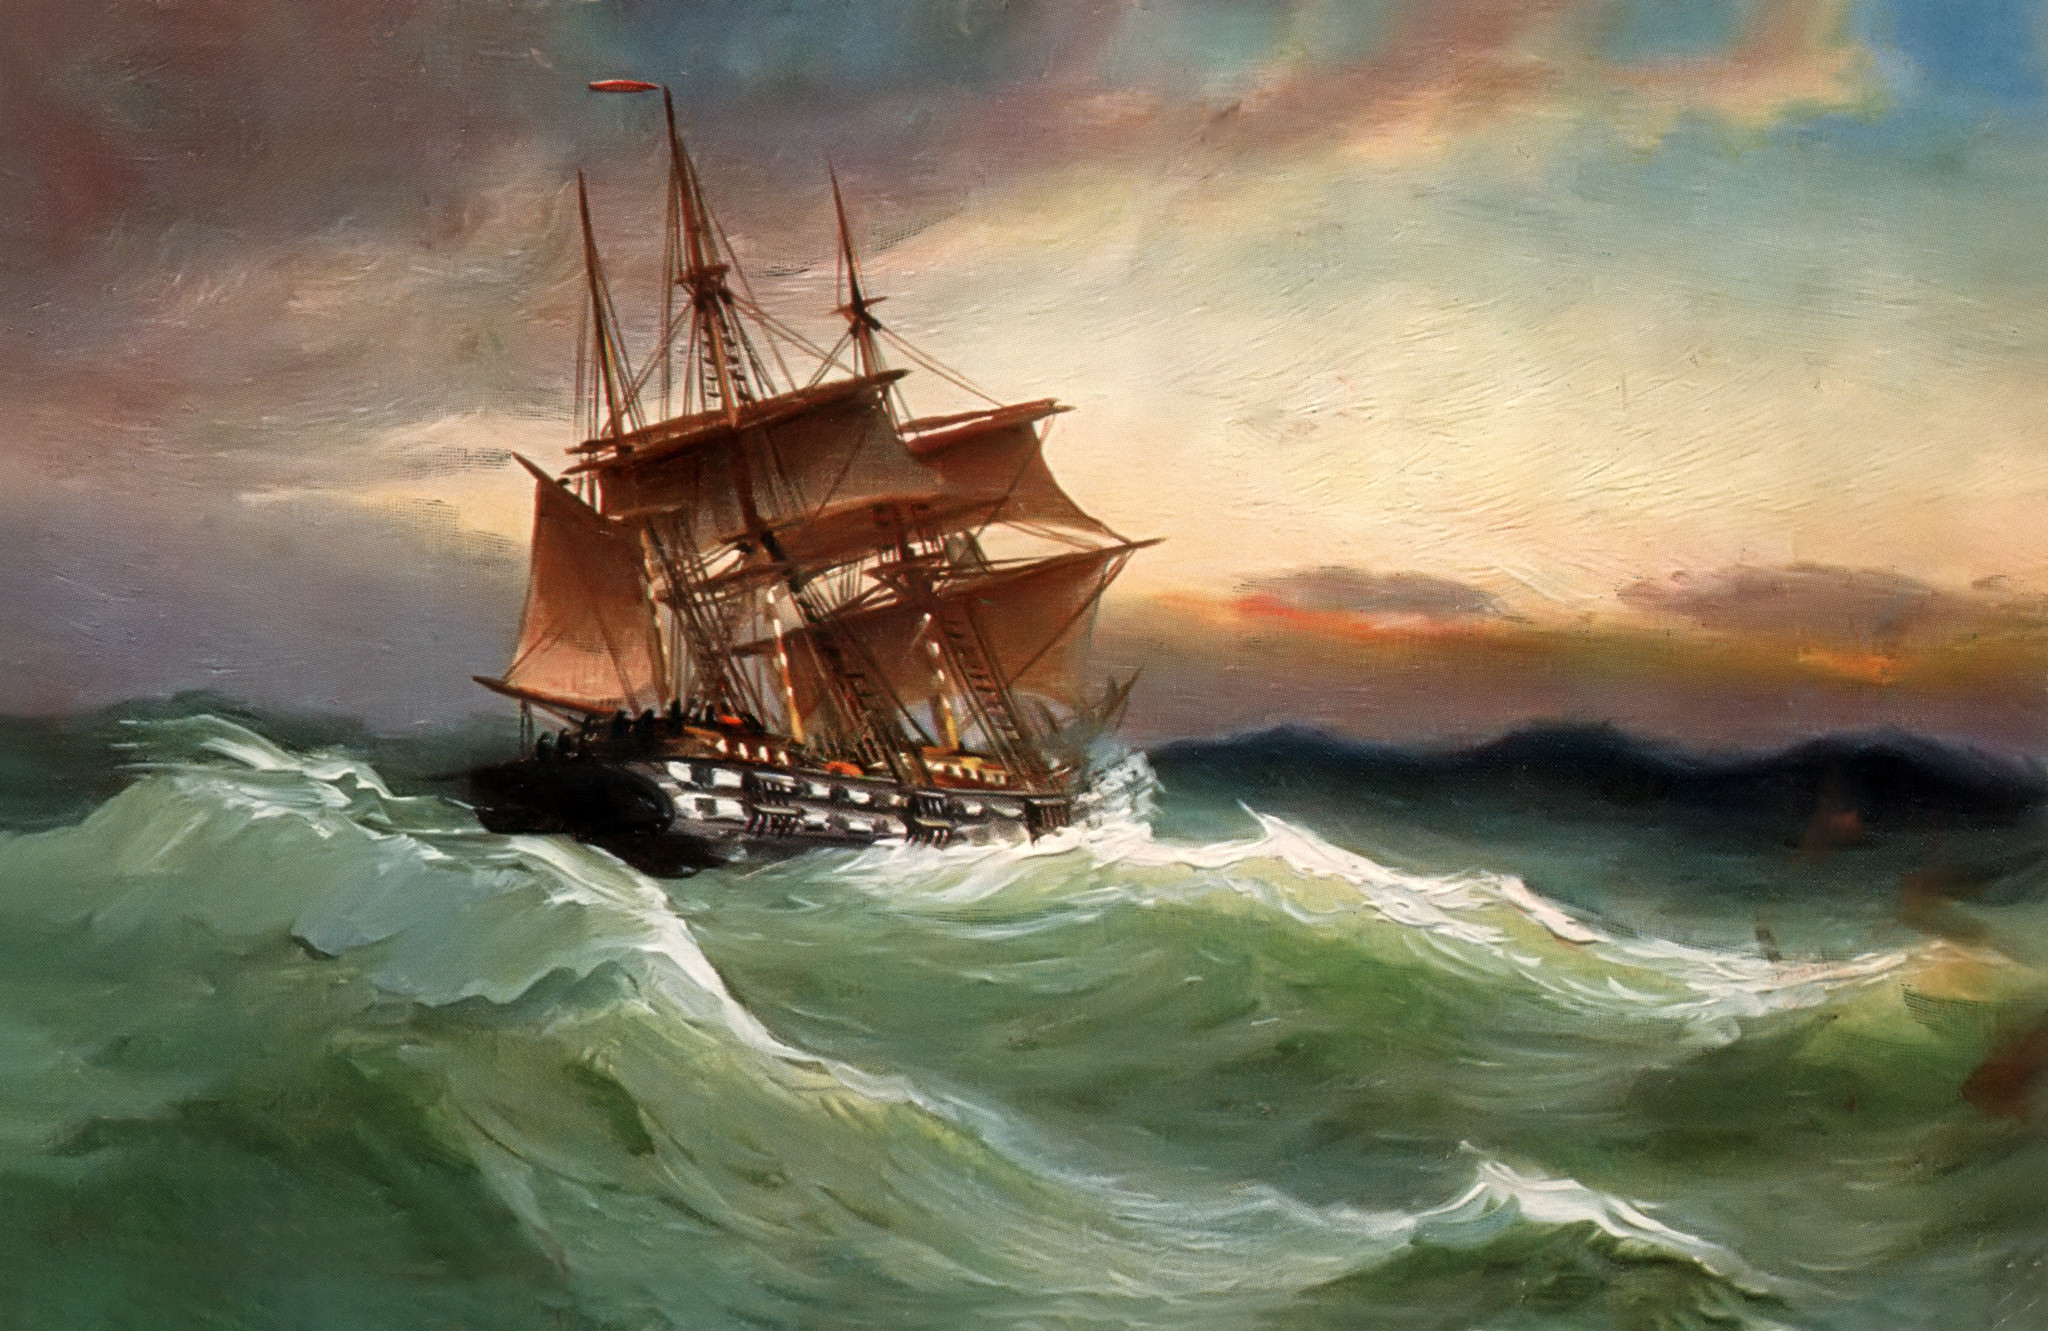 Res: 2048x1331, Sailing Ship on Stormy Sea HD Wallpaper | Hintergrund |  |  ID:678227 - Wallpaper Abyss